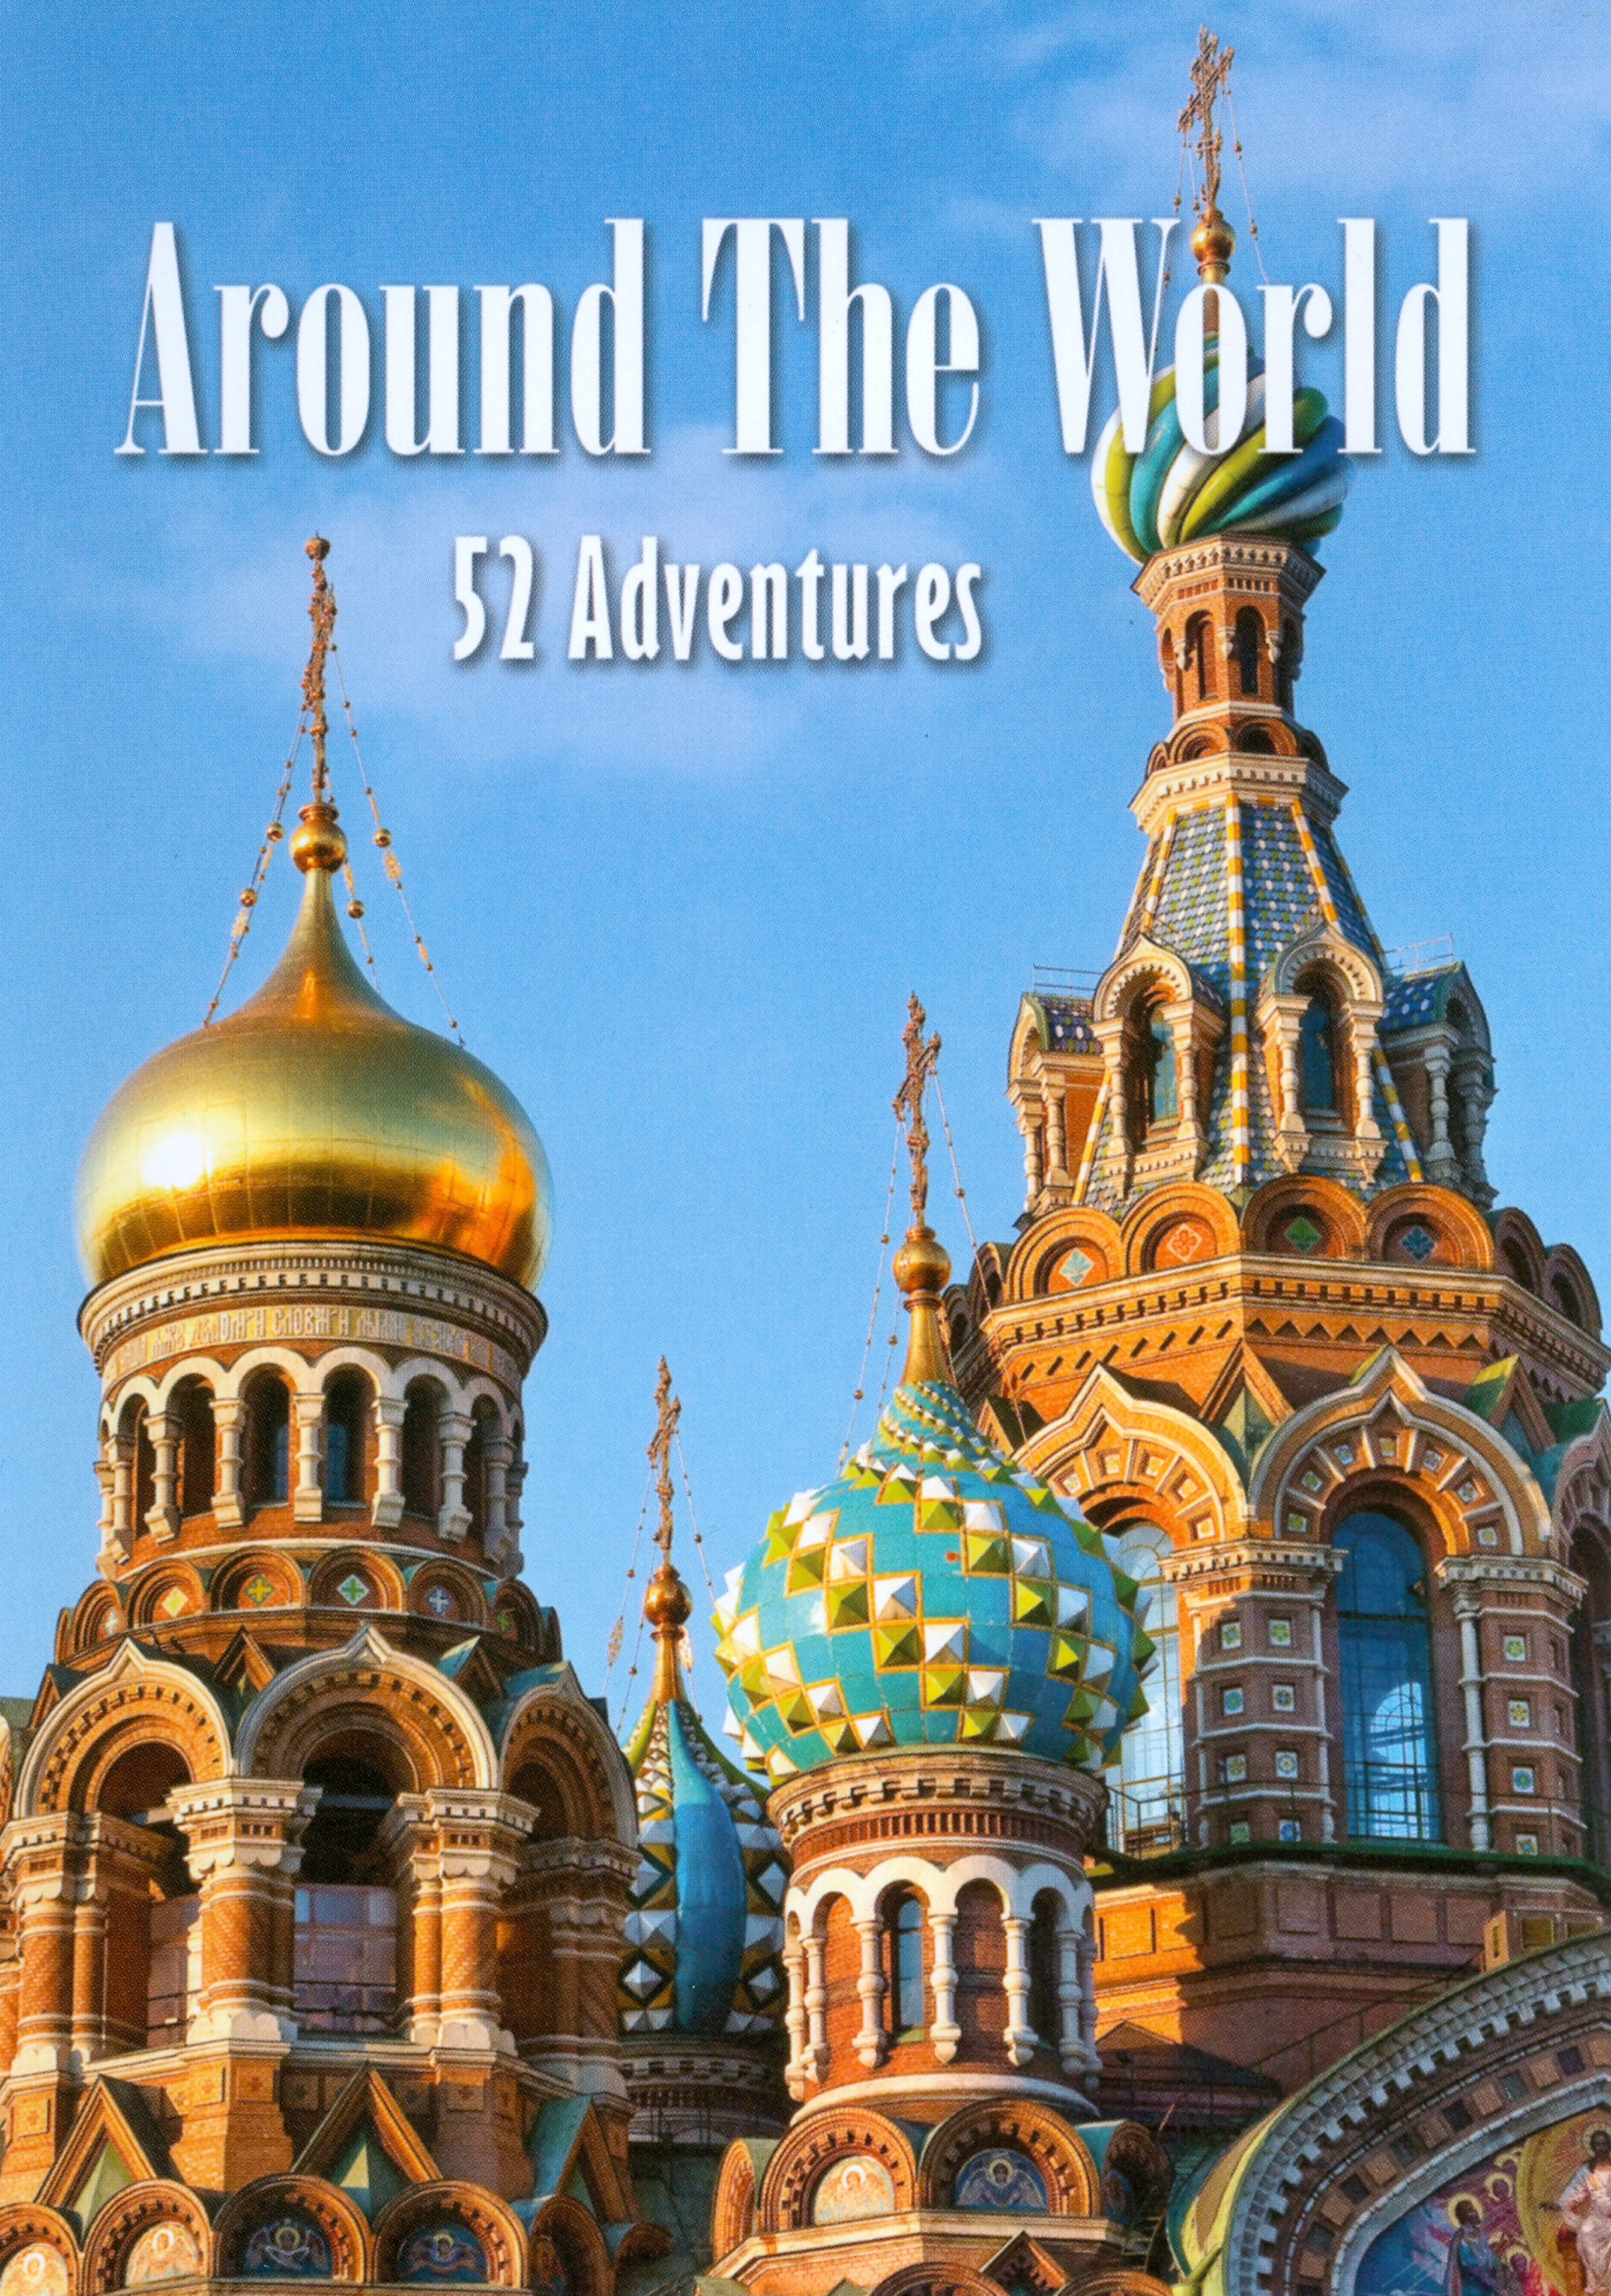 Around the World: 52 Adventures